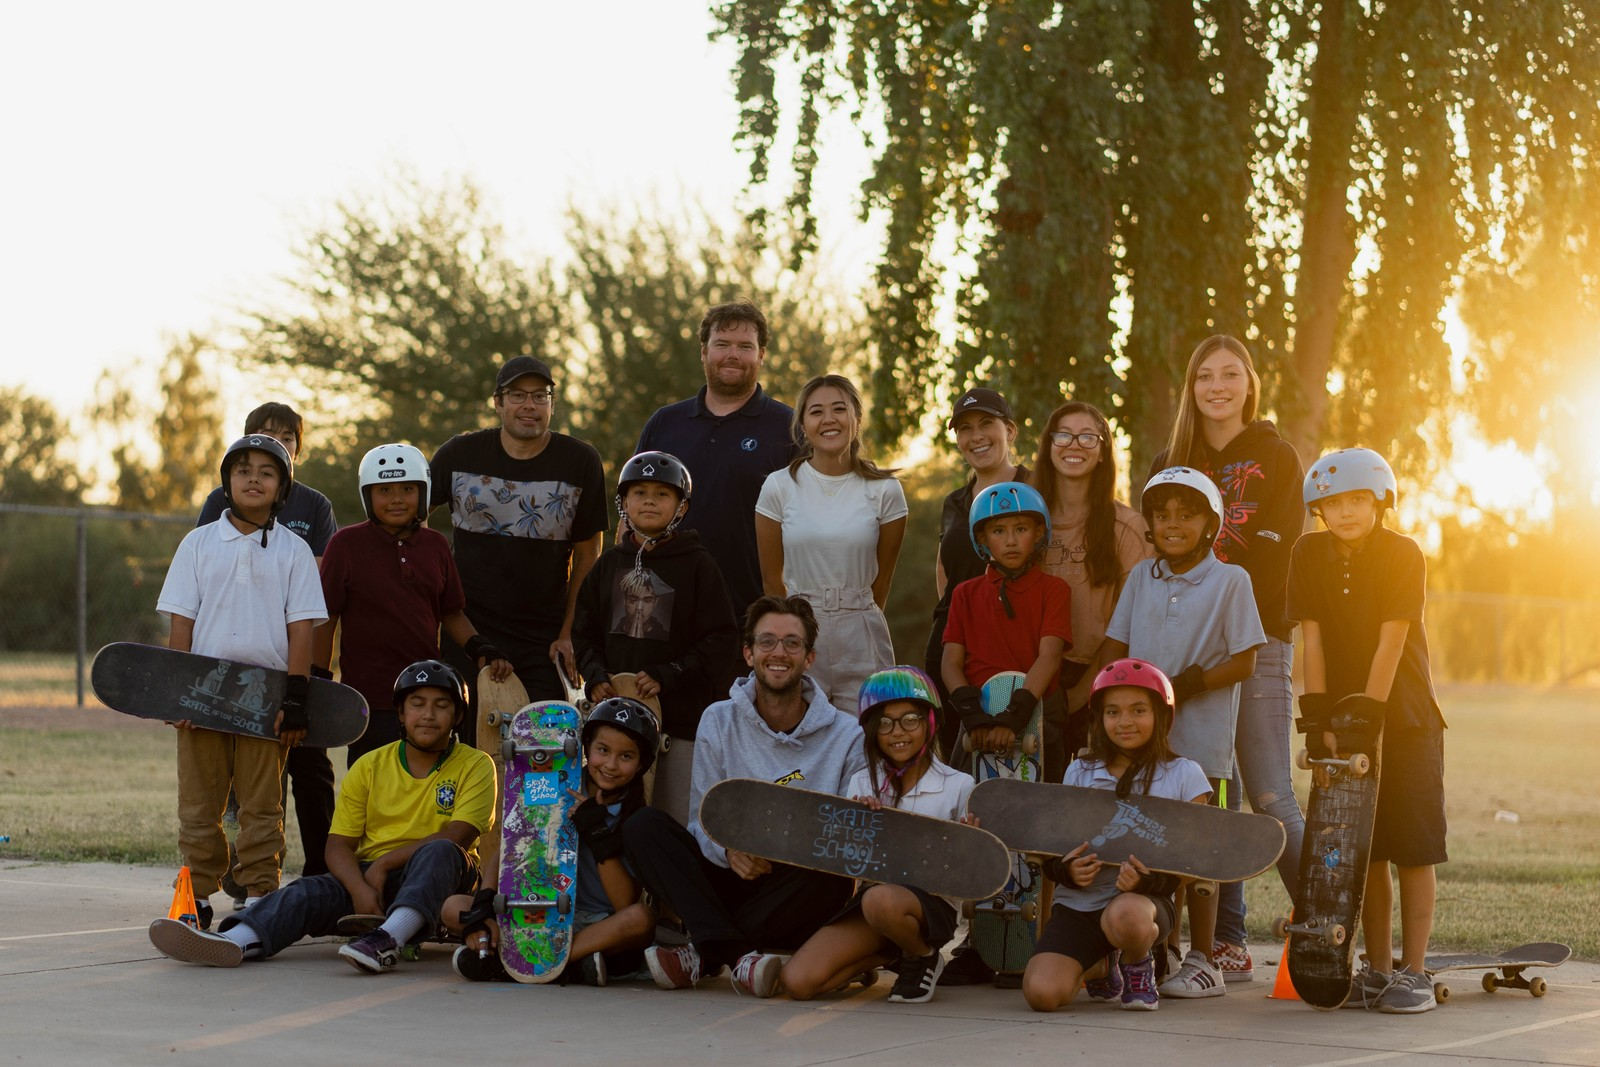 'Skate After School' Launches New Program Distributing Boards To Arizona Kids